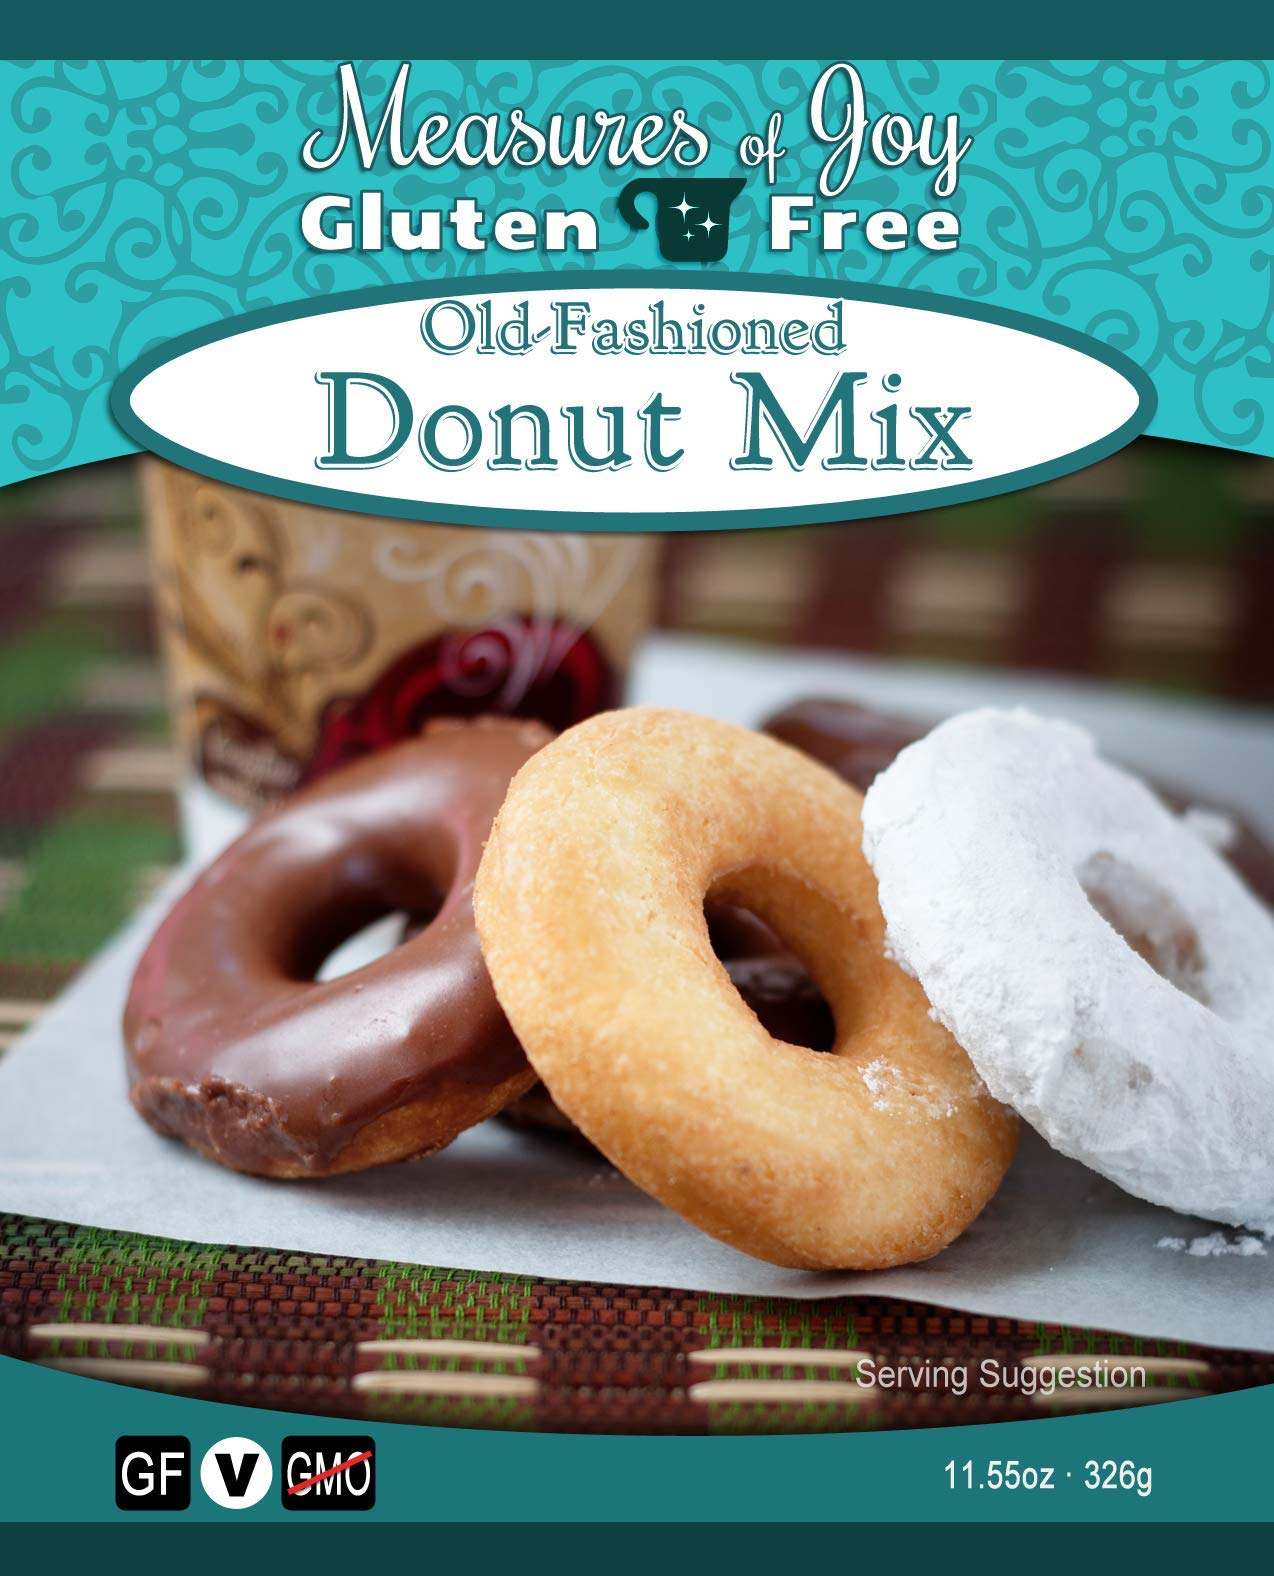 Measures of Joy Gluten Free Old-Fashioned Donut Mix by Measures of Joy